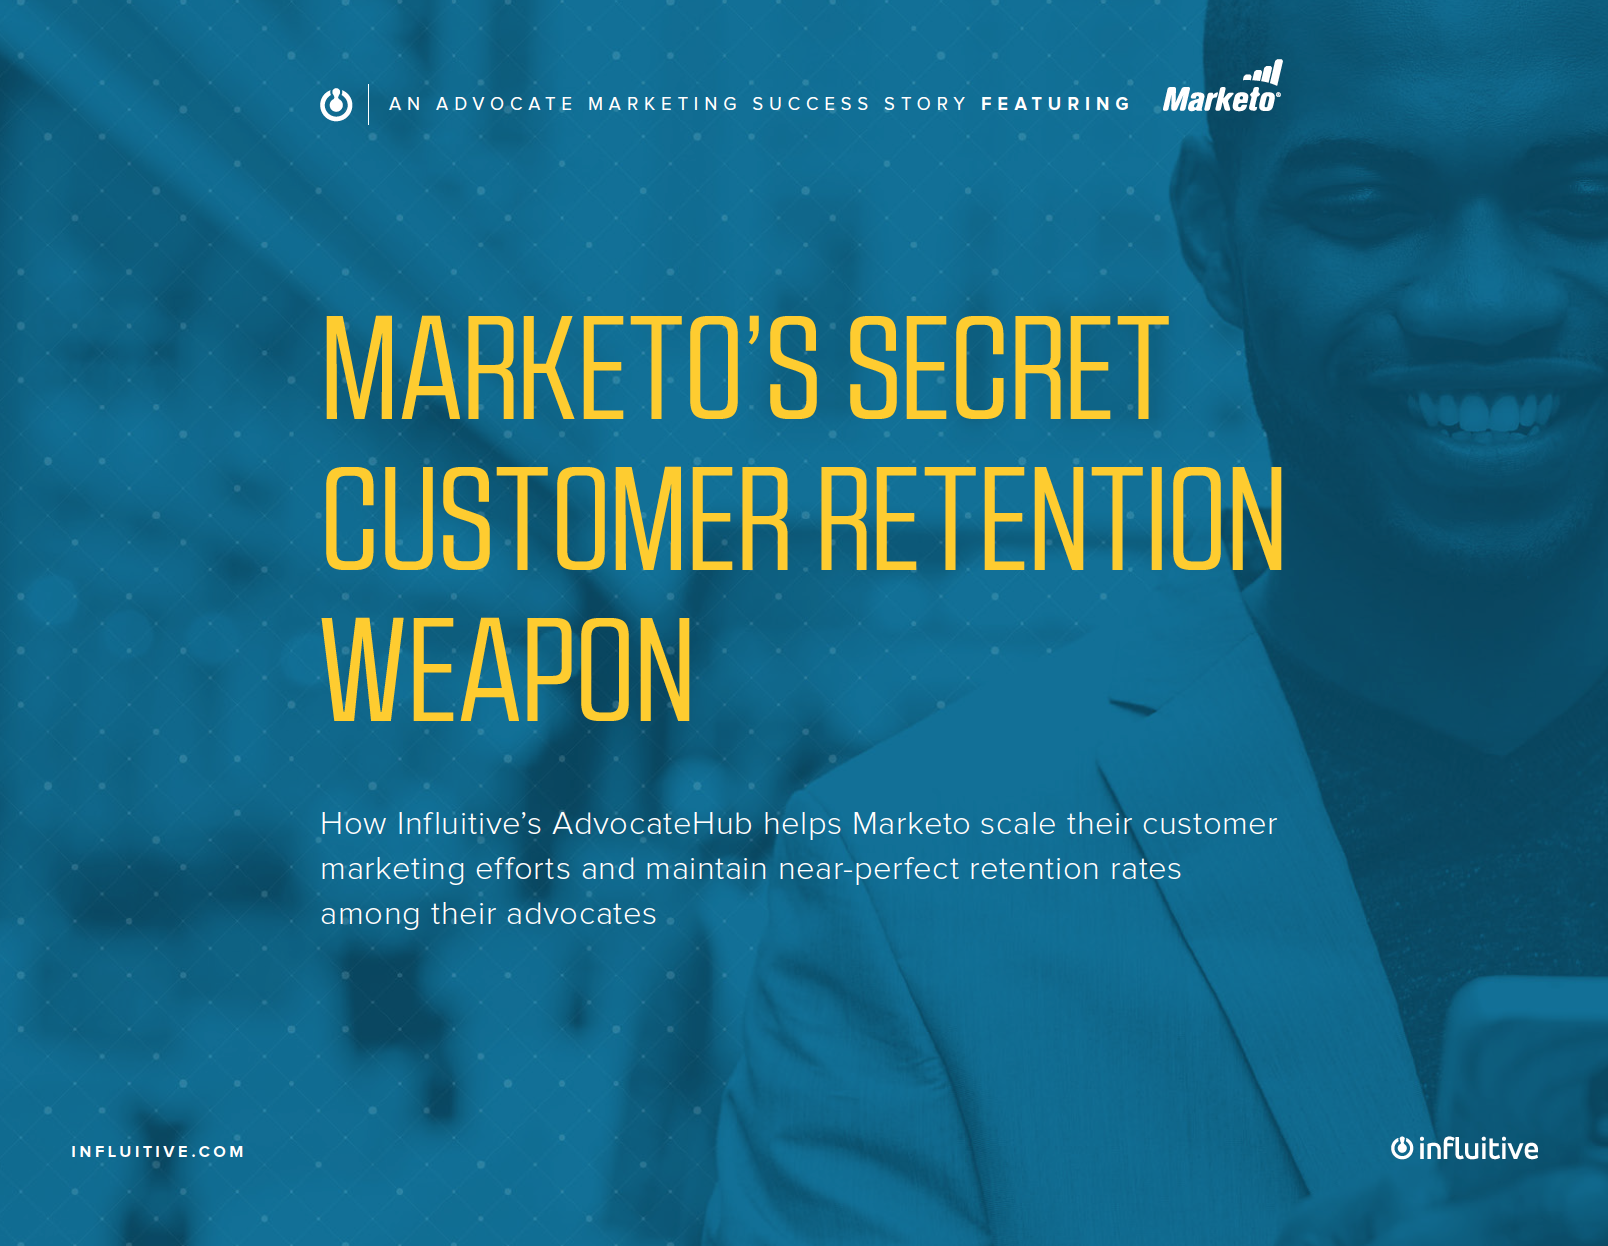 Marketo's Secret Customer Retention Weapon